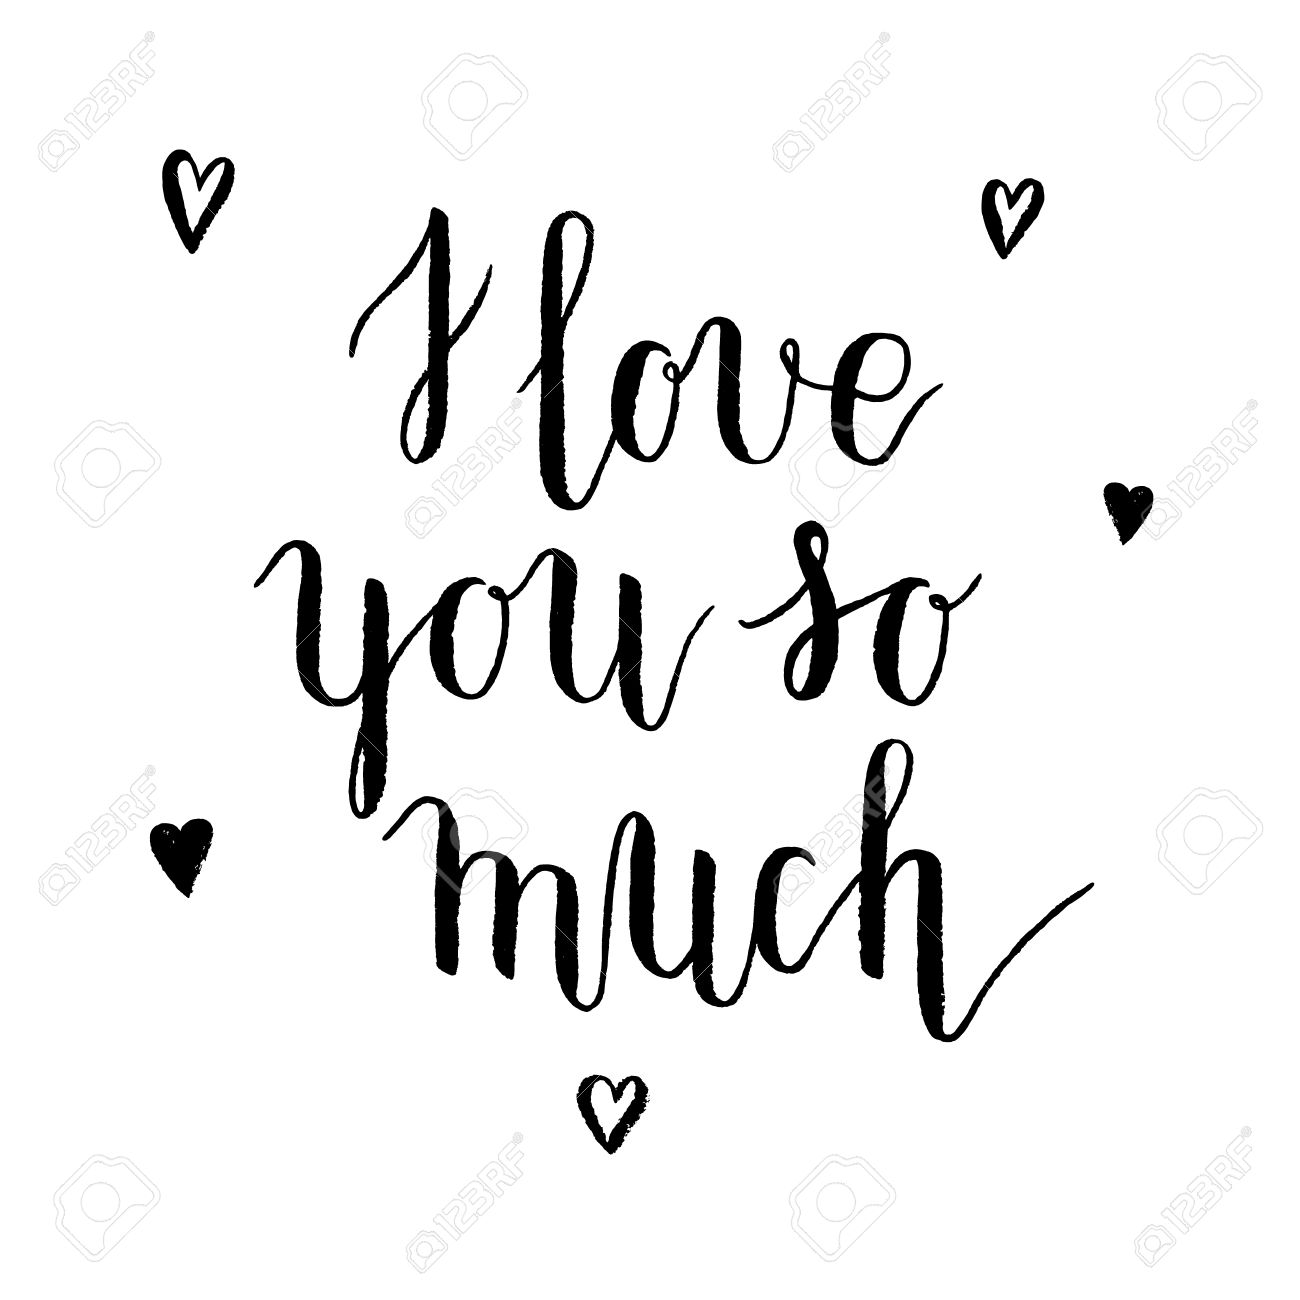 I Love You So Much Greeting Card Poster With Ink Hand Drawn